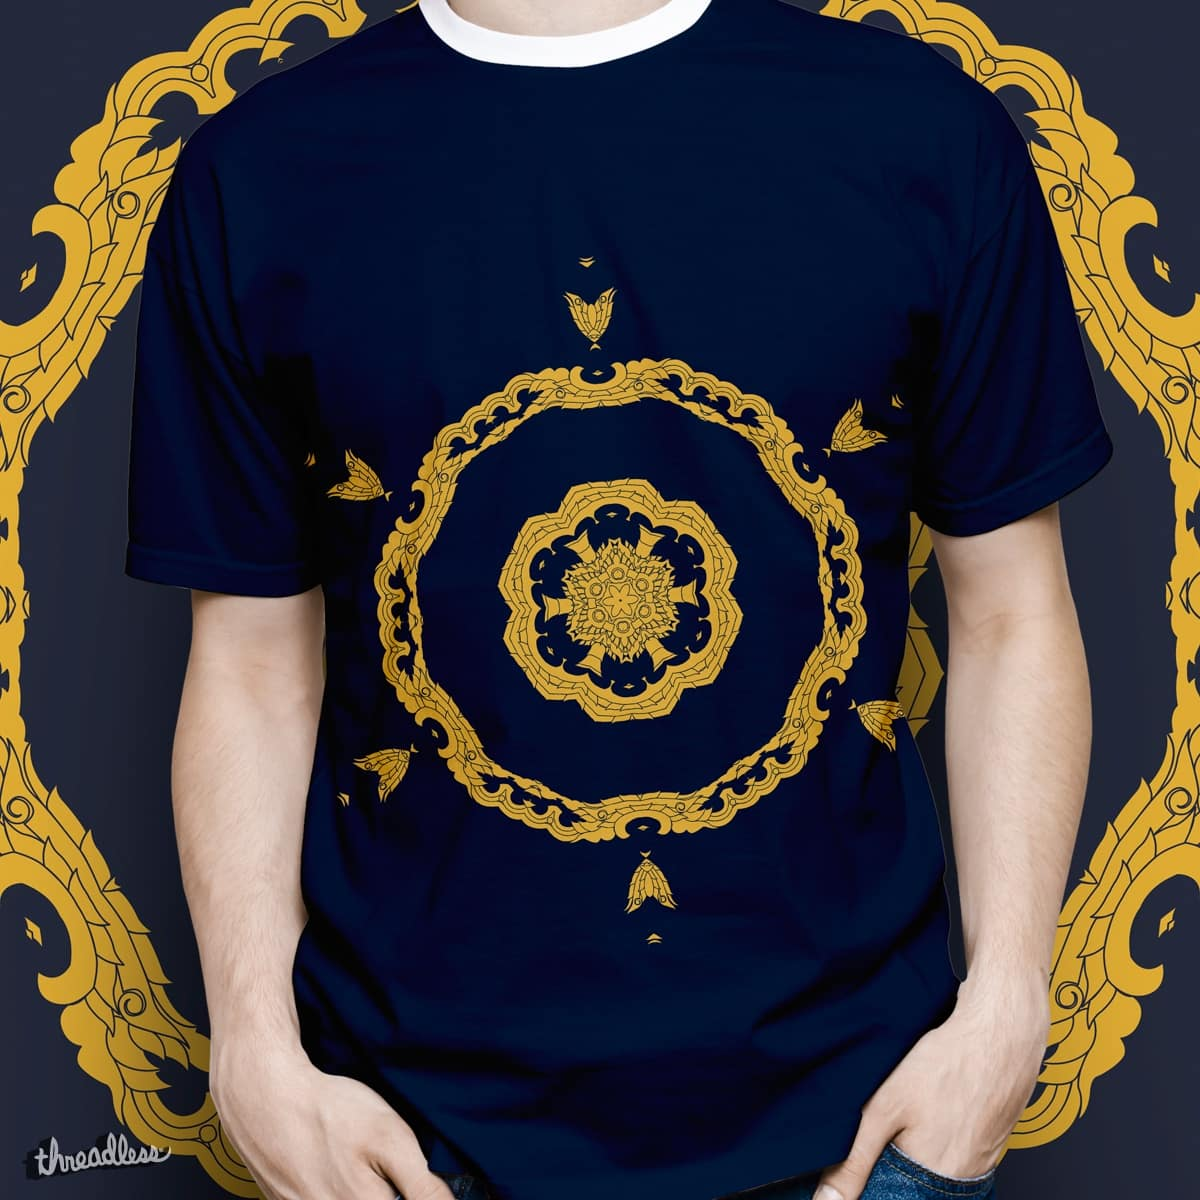 Buddhist Wheel of Life by LuisFaus on Threadless